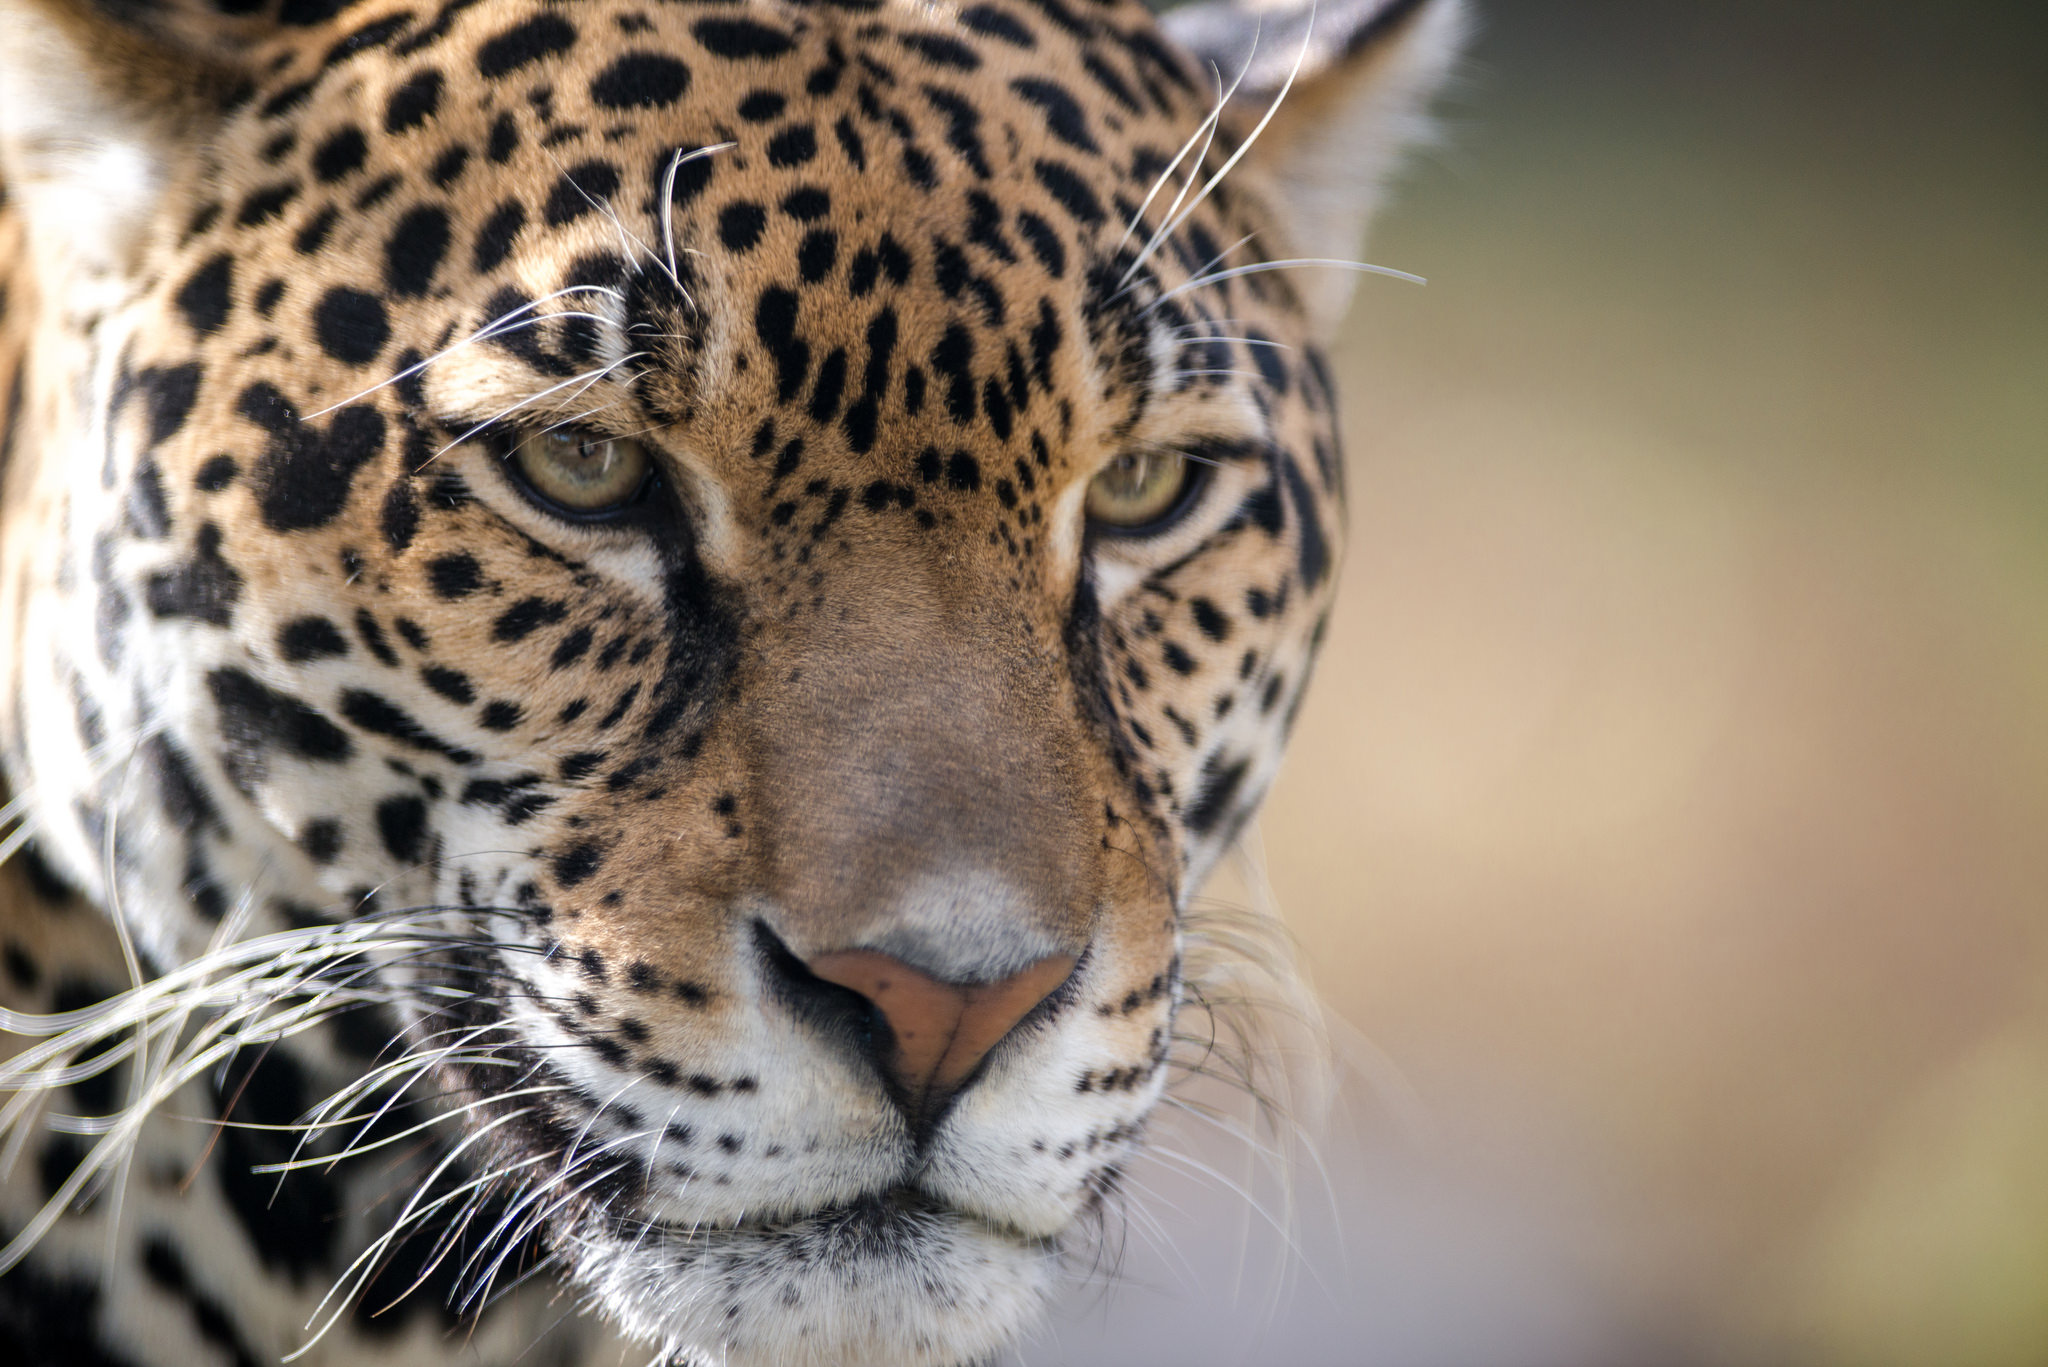 jaguar-closeup-portrait-kilby-2015-1.jpg